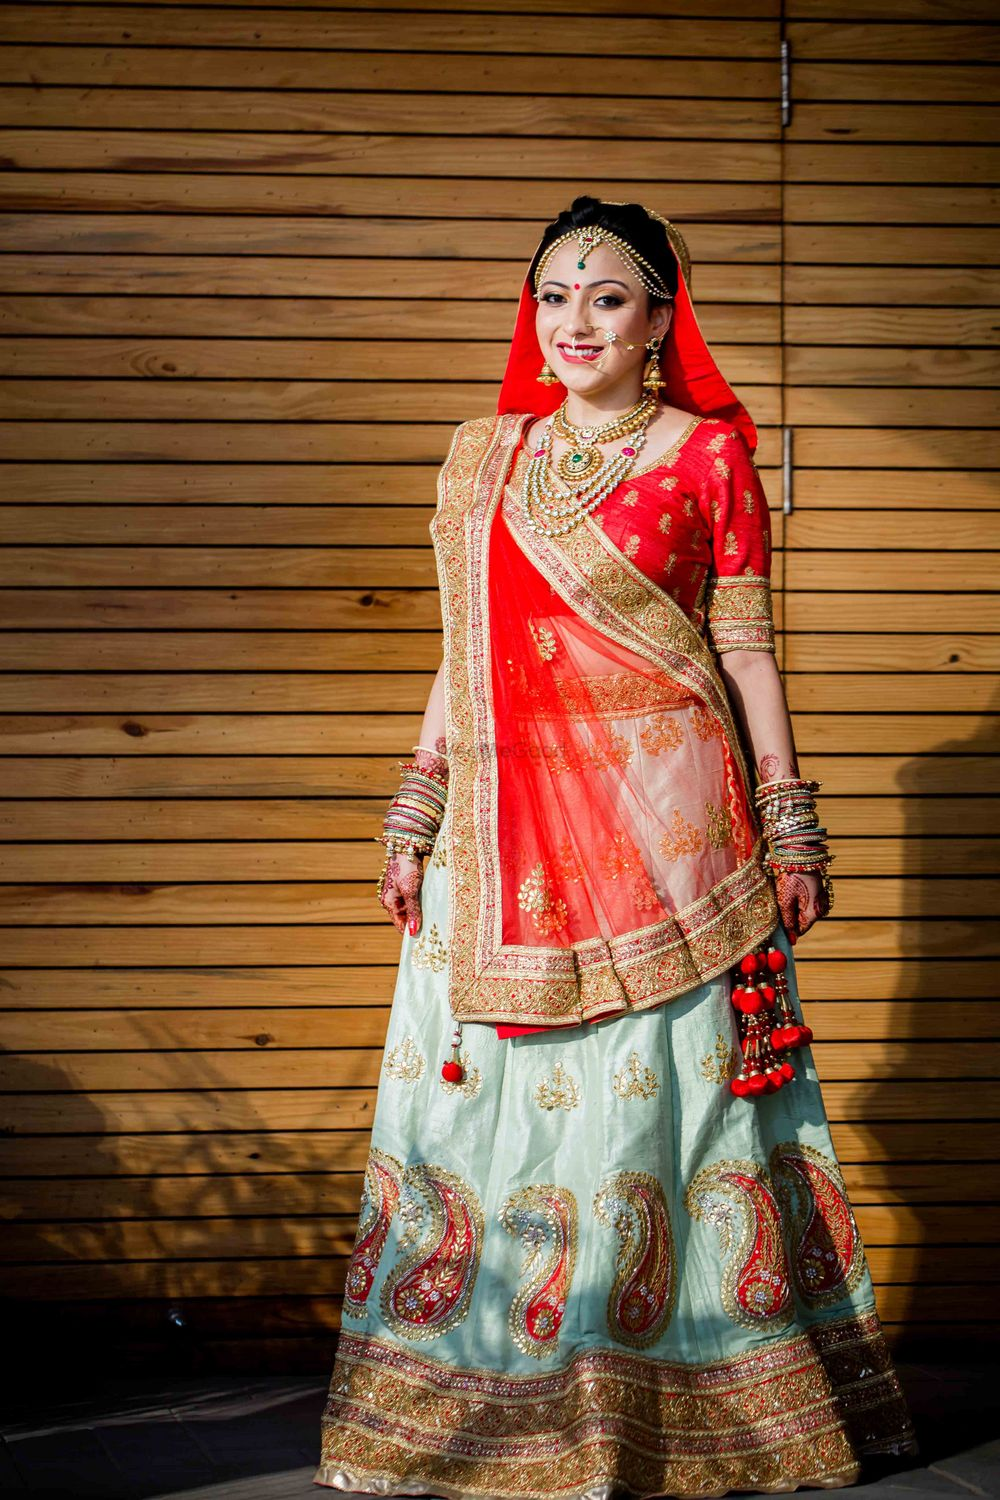 Photo From Bridal - By Deep Panchal's Photography